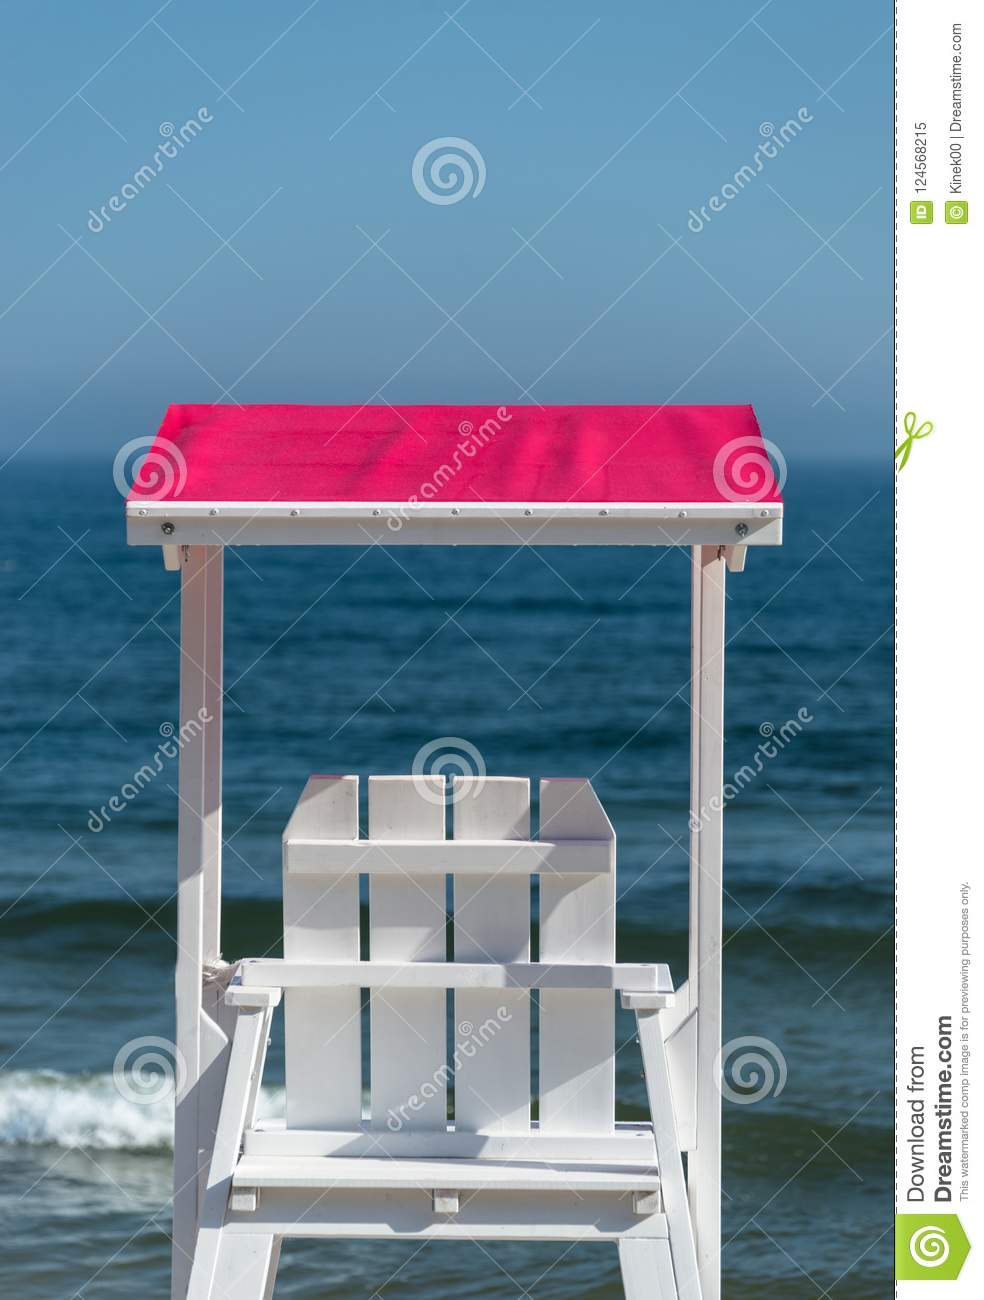 White lifeguard chair visible from the back with a pink visor against the background of a beautiful blue sea and sky on a summer s